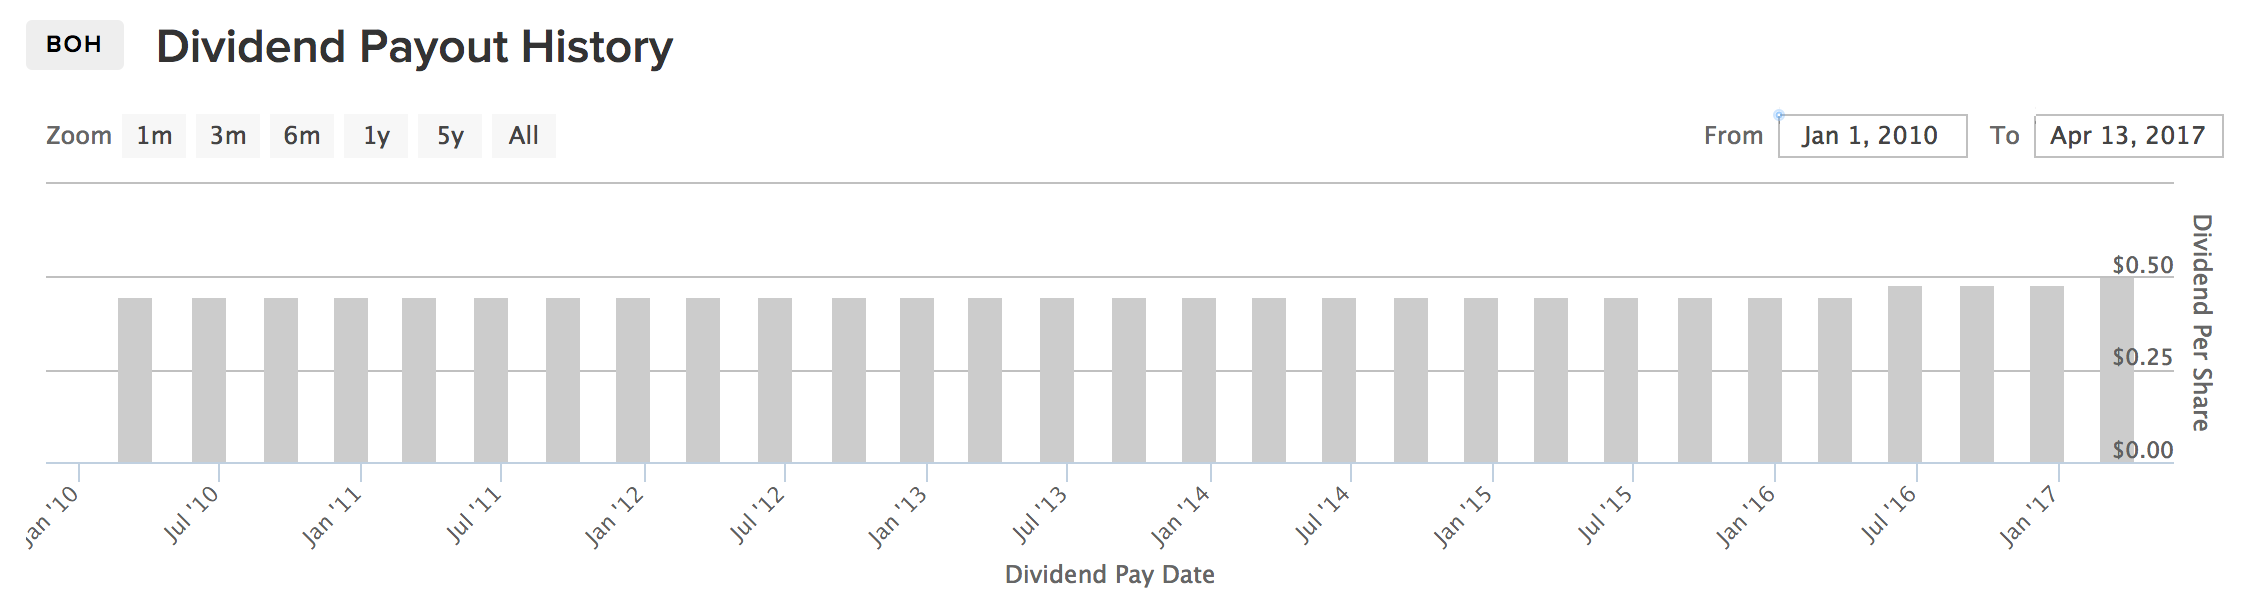 BOH Dividend Payout History